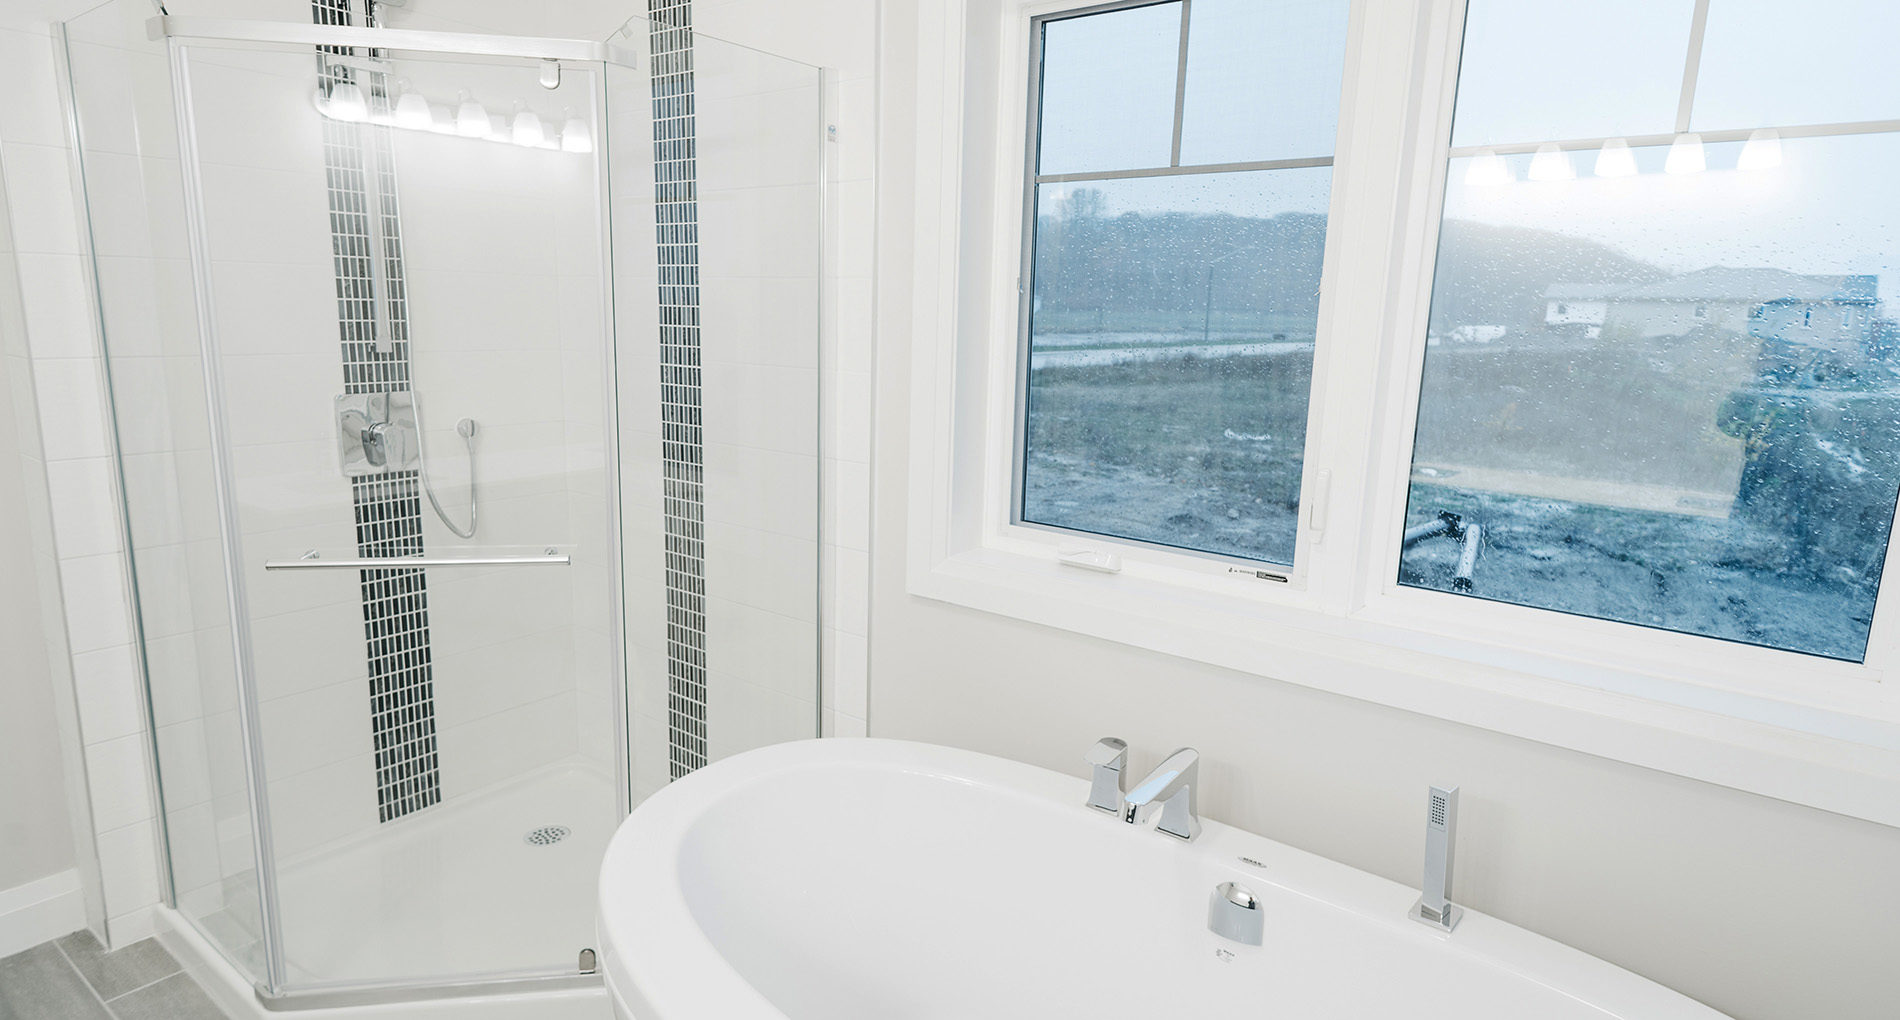 Bathroom Renovation Barrie Waterfront Slider